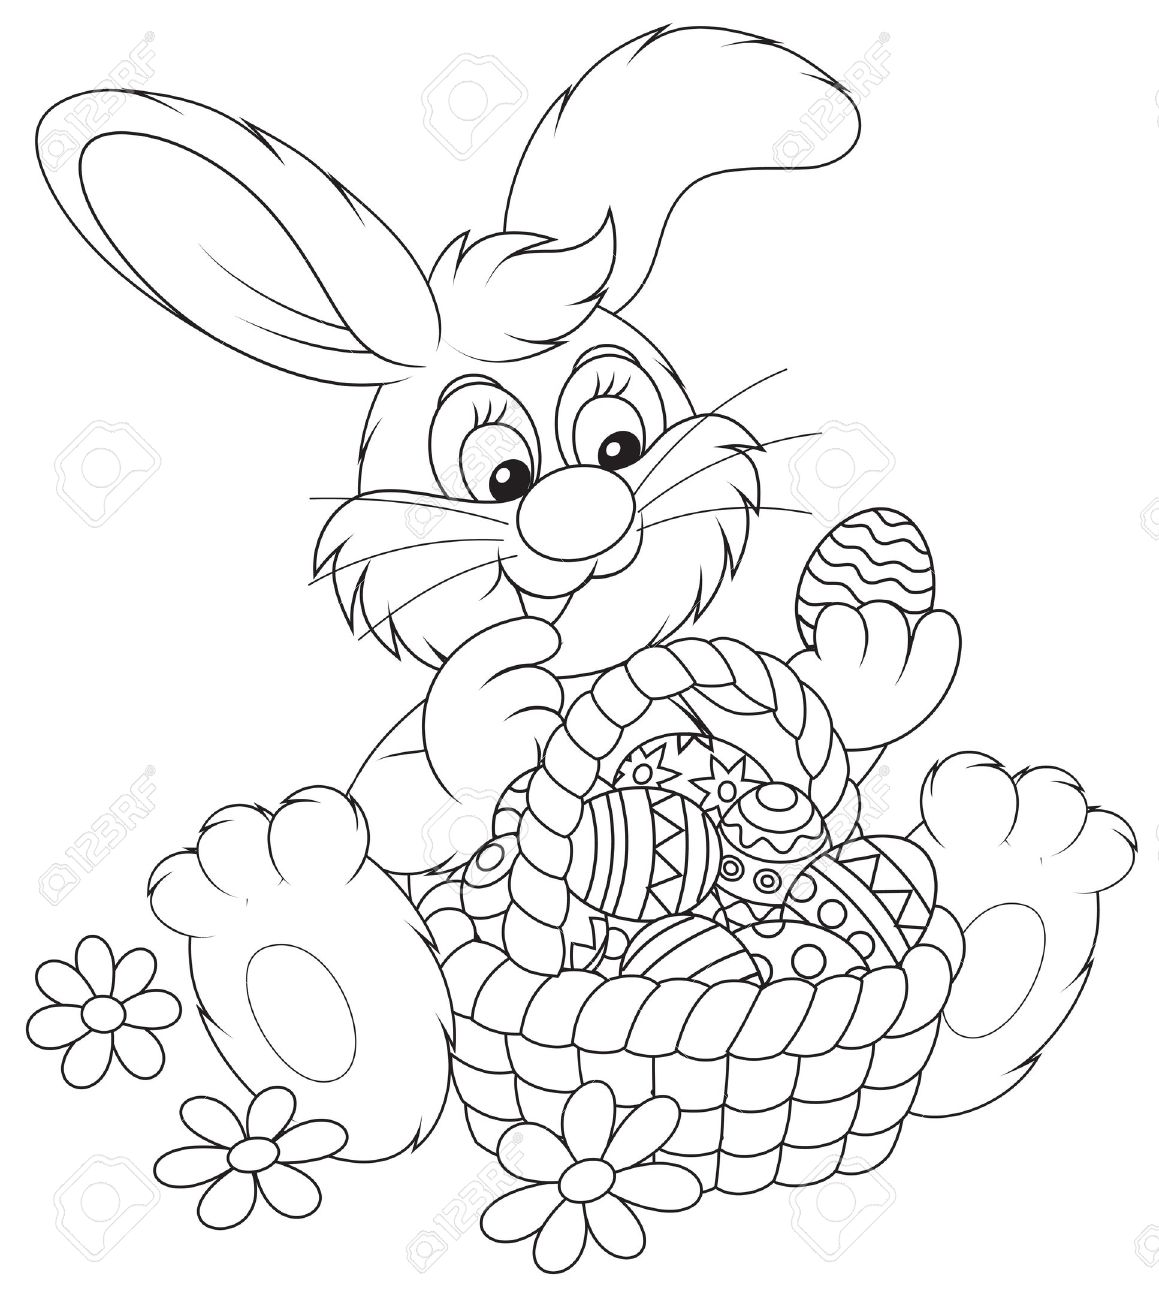 1159x1300 Easter Bunny With A Basket Of Painted Eggs Royalty Free Cliparts